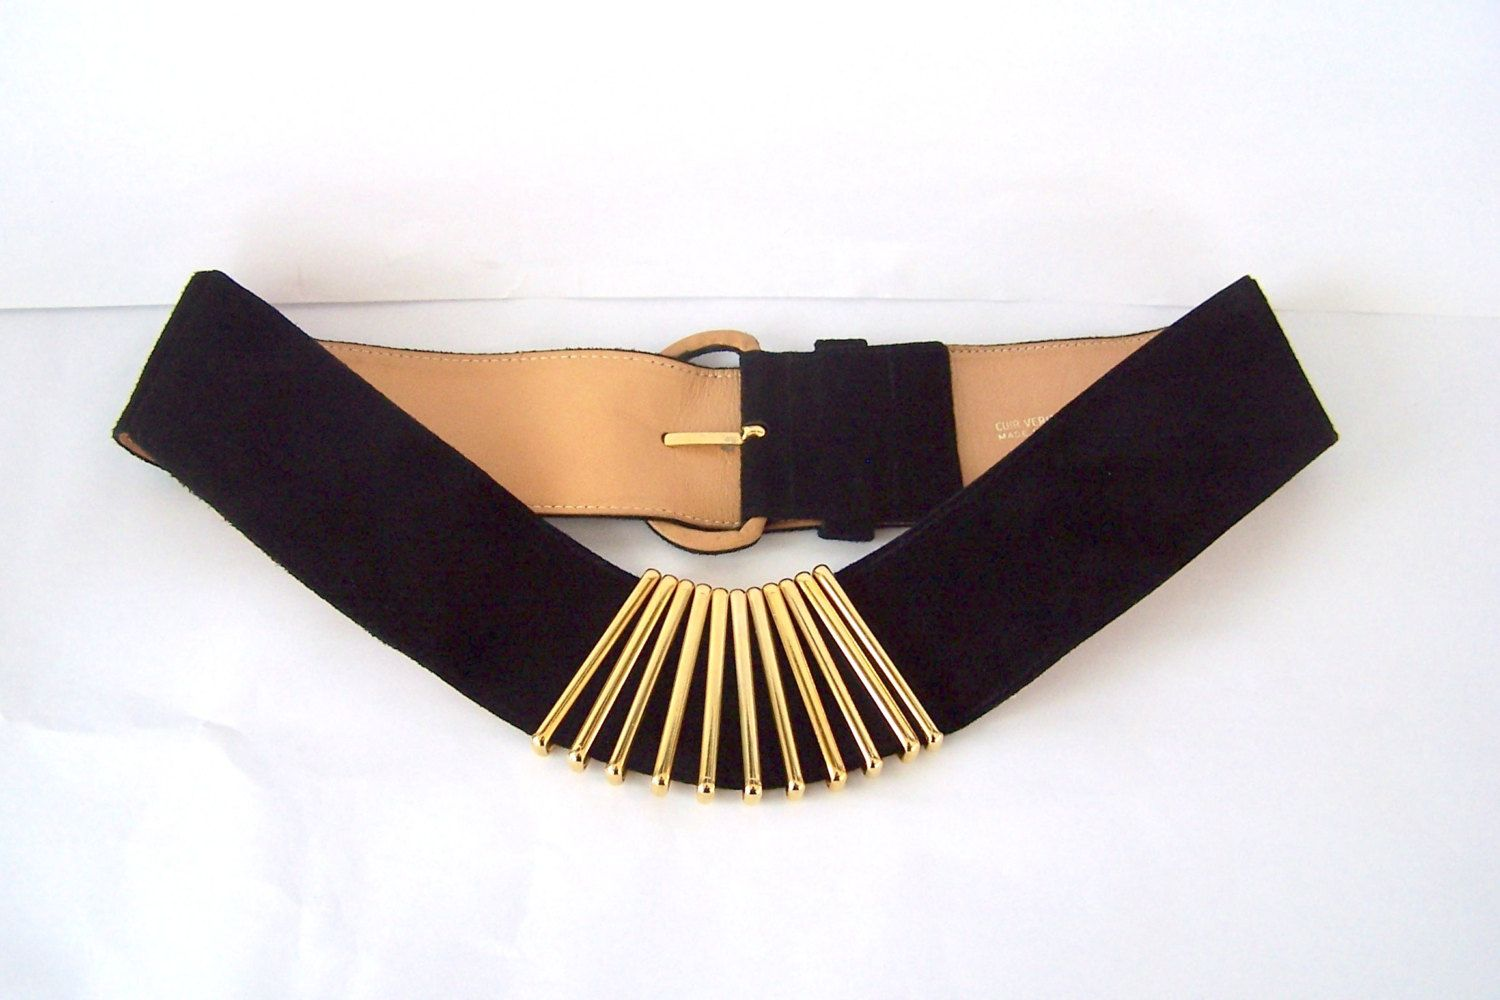 Karl Lagerfeld Black Suede And Gold Metal 80s Belt Designer Belts Vintage 80s Belt Made In France Pre Chanel Black Suede Suede Designer Belts